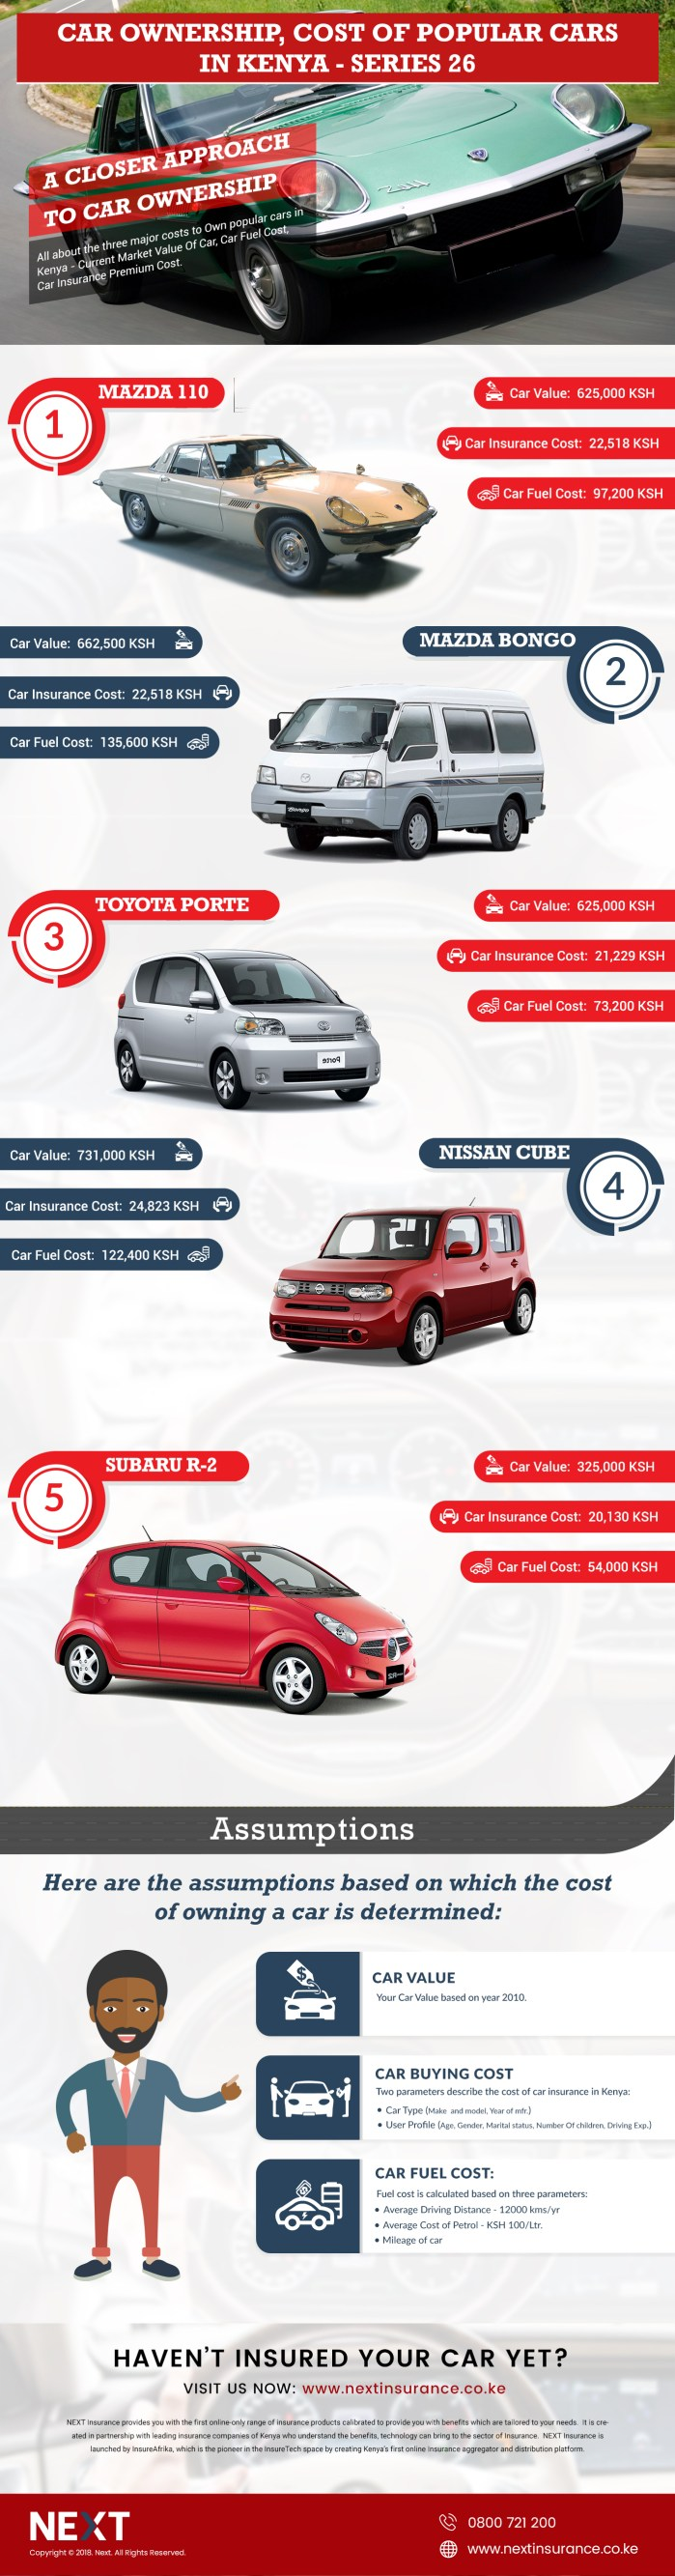 Car Ownership Cost Kenya 🚗 Infographic #26